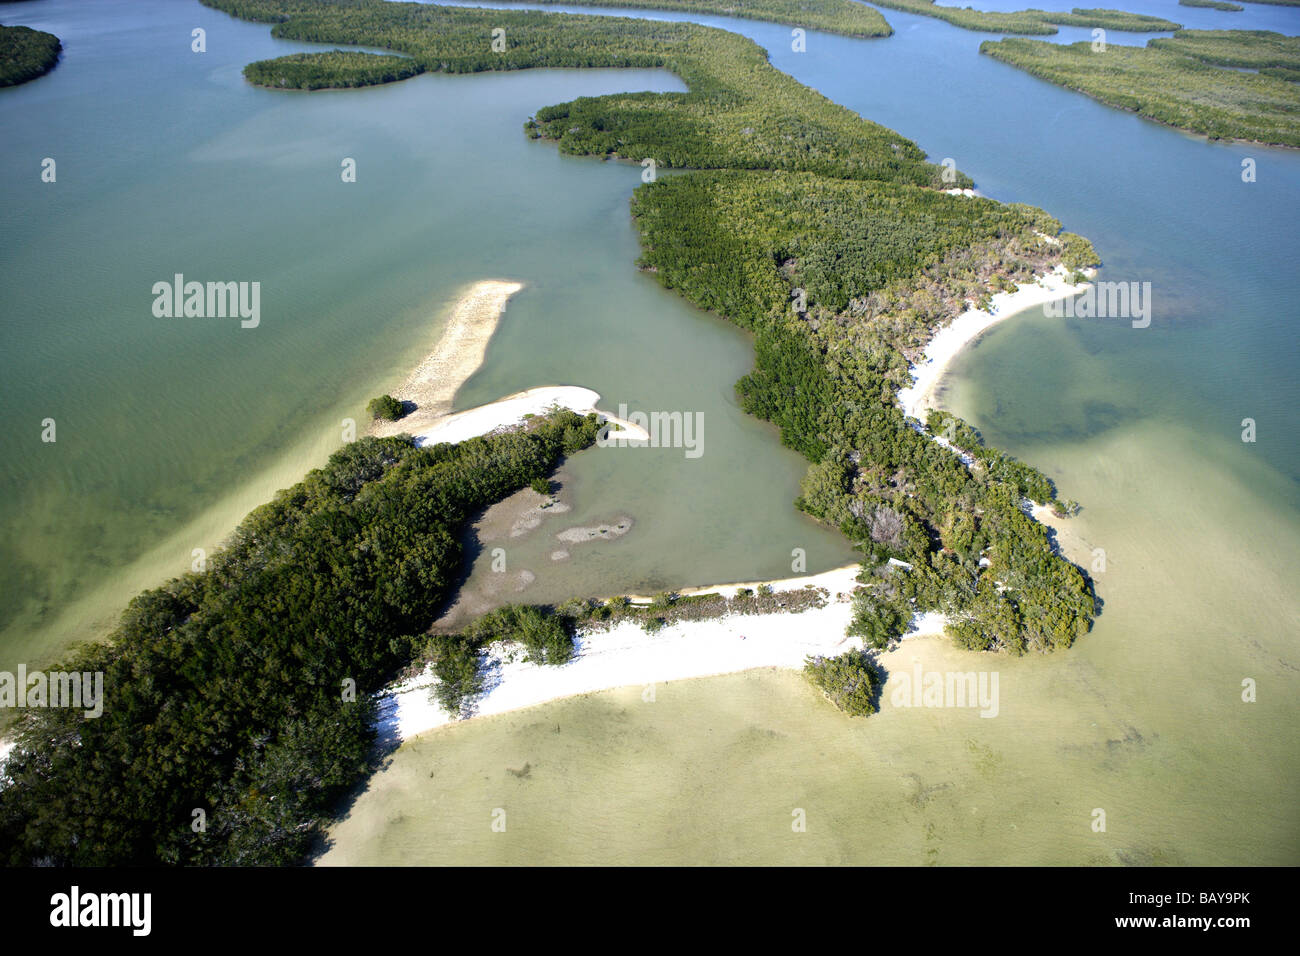 Aerial view of mangroves at Ten Thousand Islands National Wildlife Refuge, Florida, USA - Stock Image